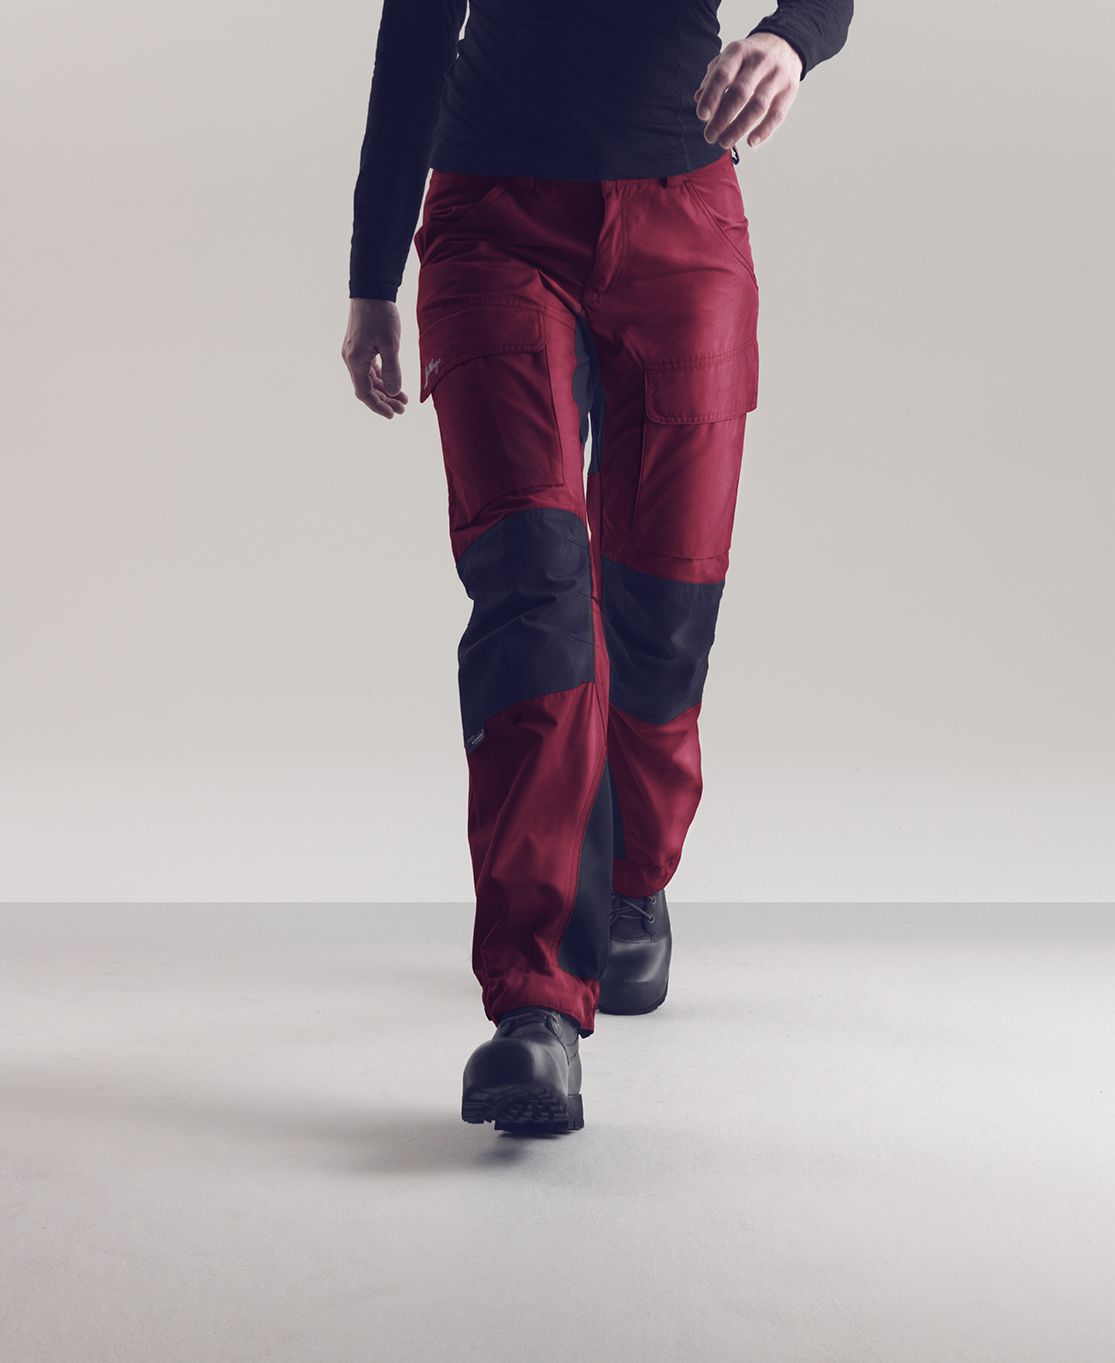 cdf2d3ce Lundhags Authentic Pant A Pant with multifunctional and ecological approach  that is optimal for trekking.